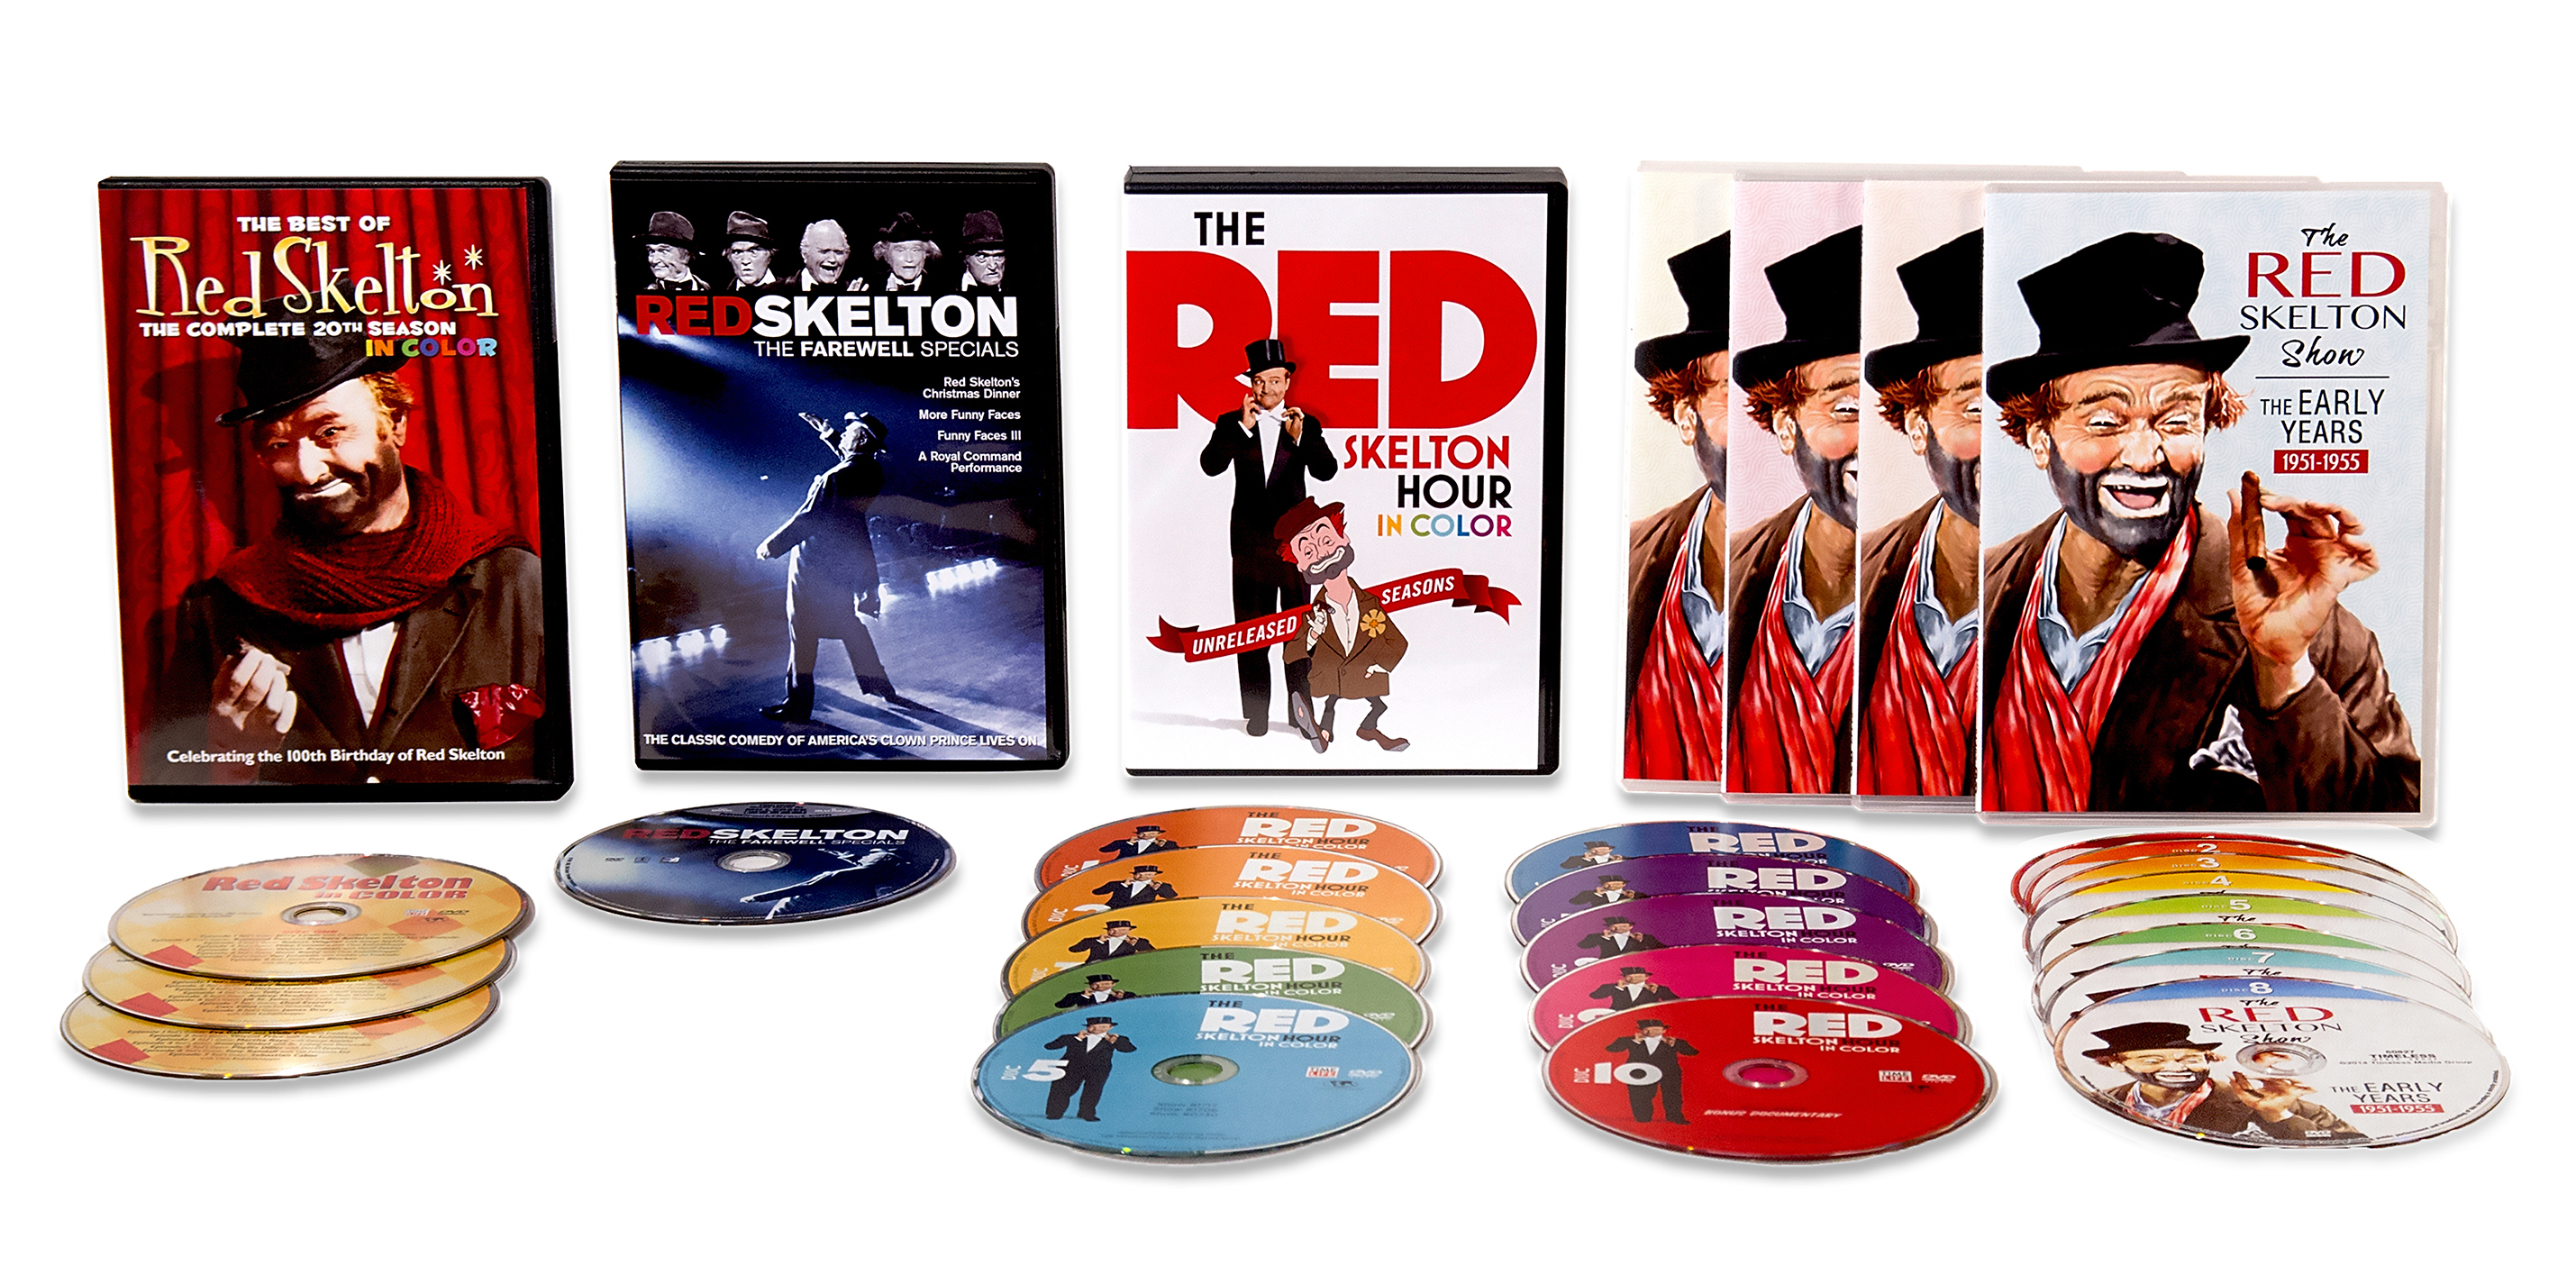 Red skelton deluxe